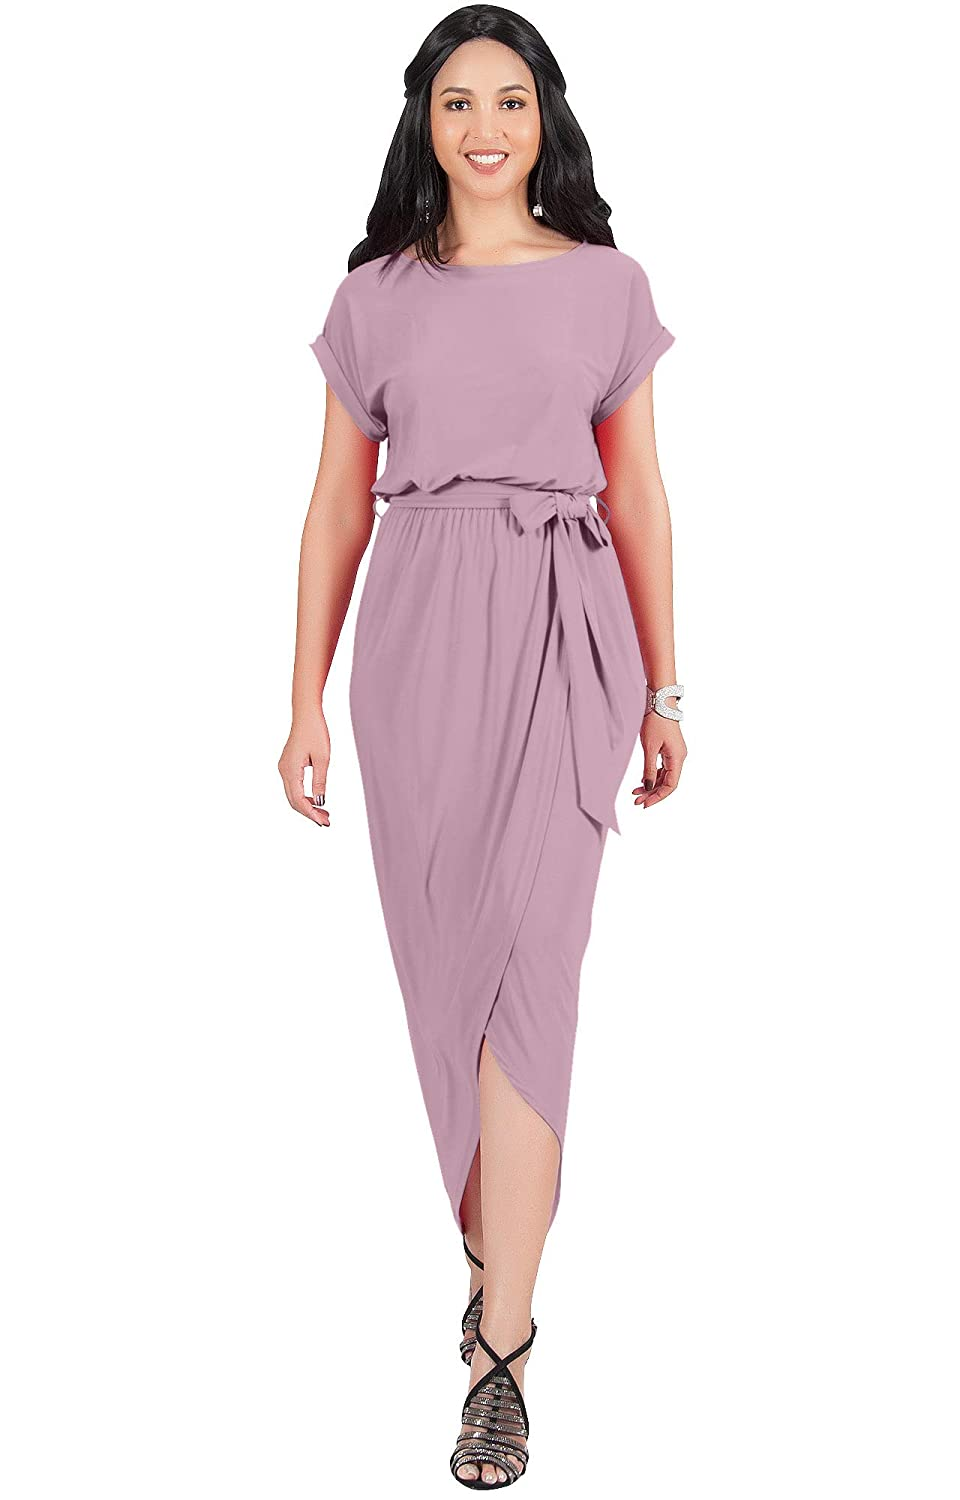 4d200edbe8a33 KOH KOH Womens Short Sleeves Round Neck Solid Draped Asymmetrical Maxi  Dress at Amazon Women s Clothing store